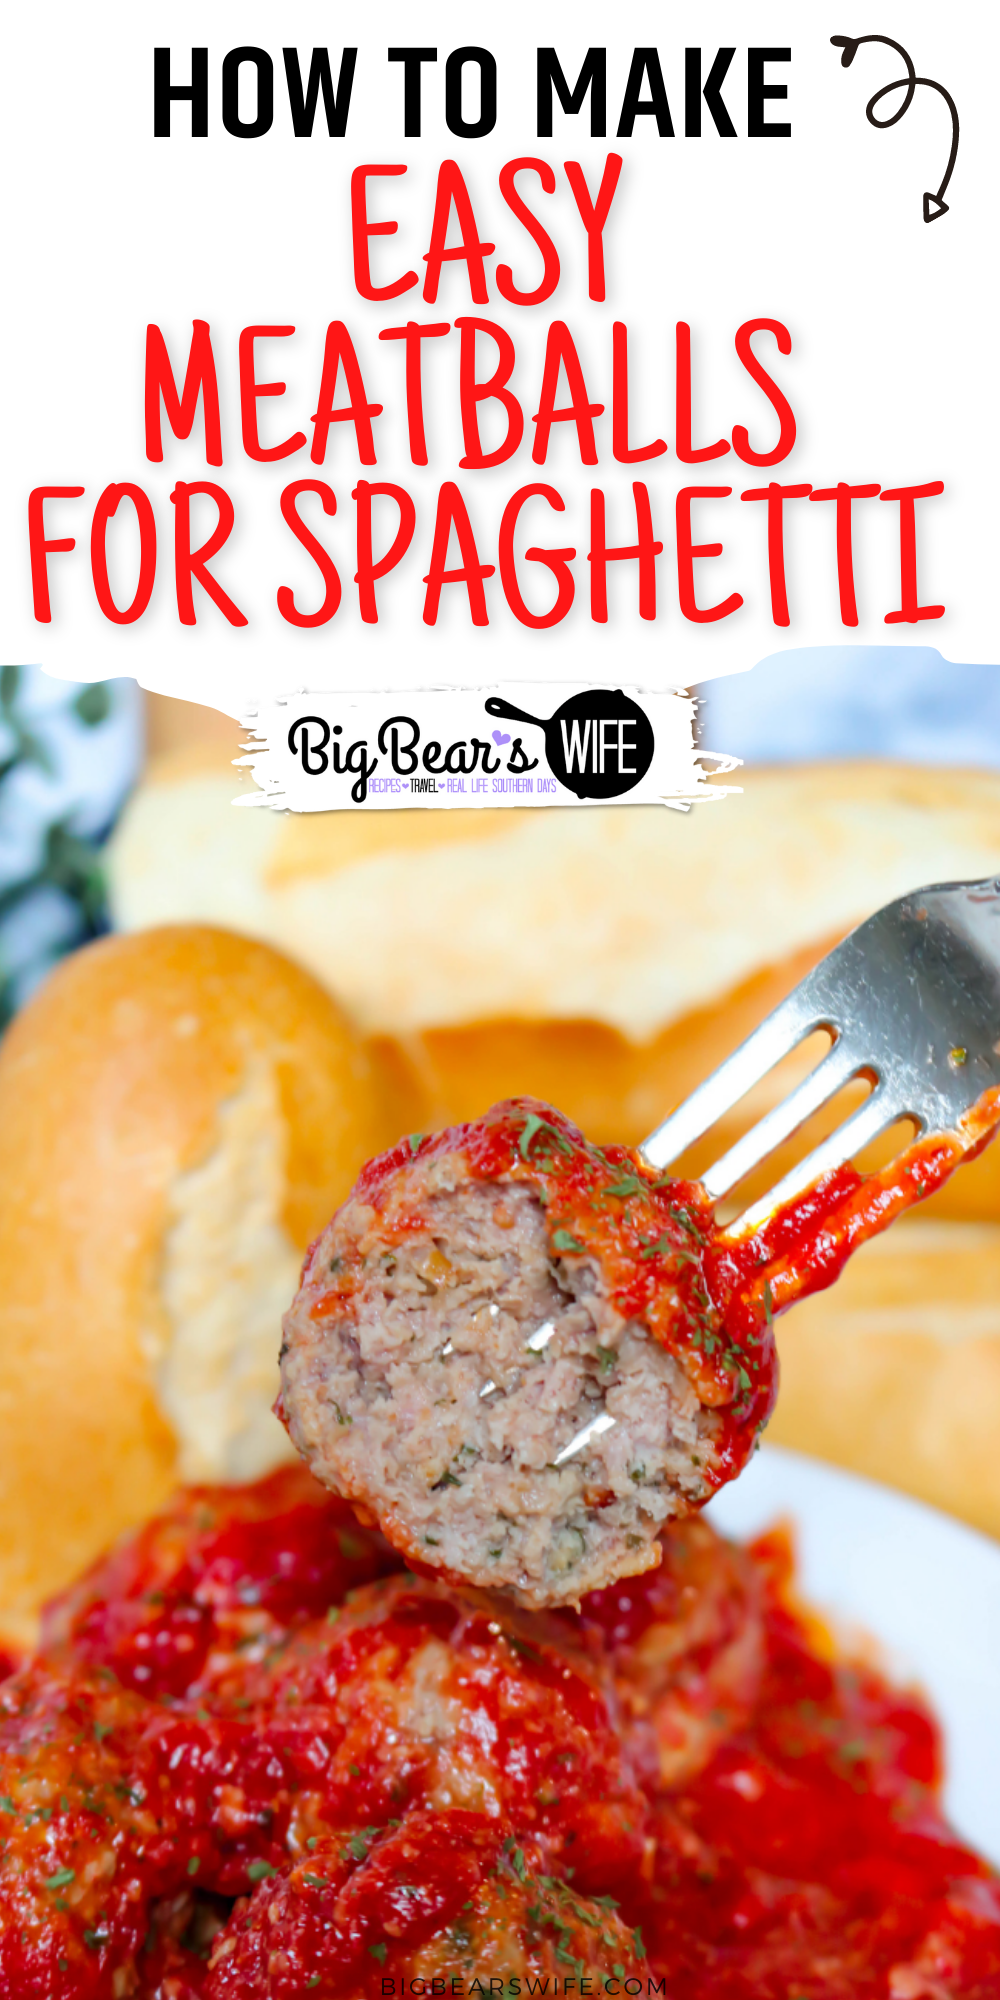 This recipe is just great for Easy Meatballs  for Spaghetti via @bigbearswife